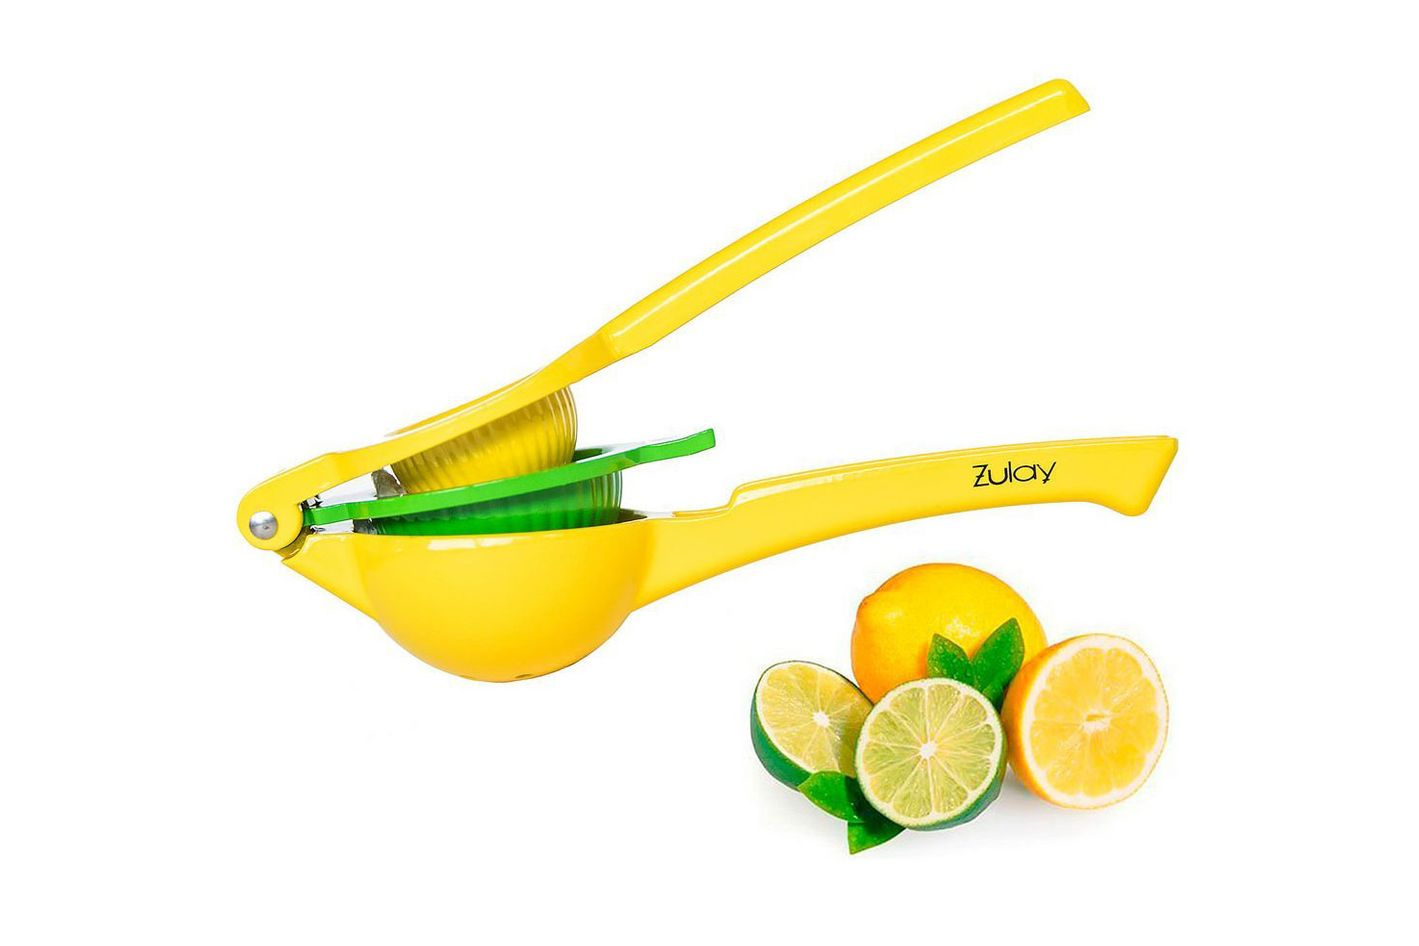 Zulay Premium Quality Metal Lemon Lime Squeezer